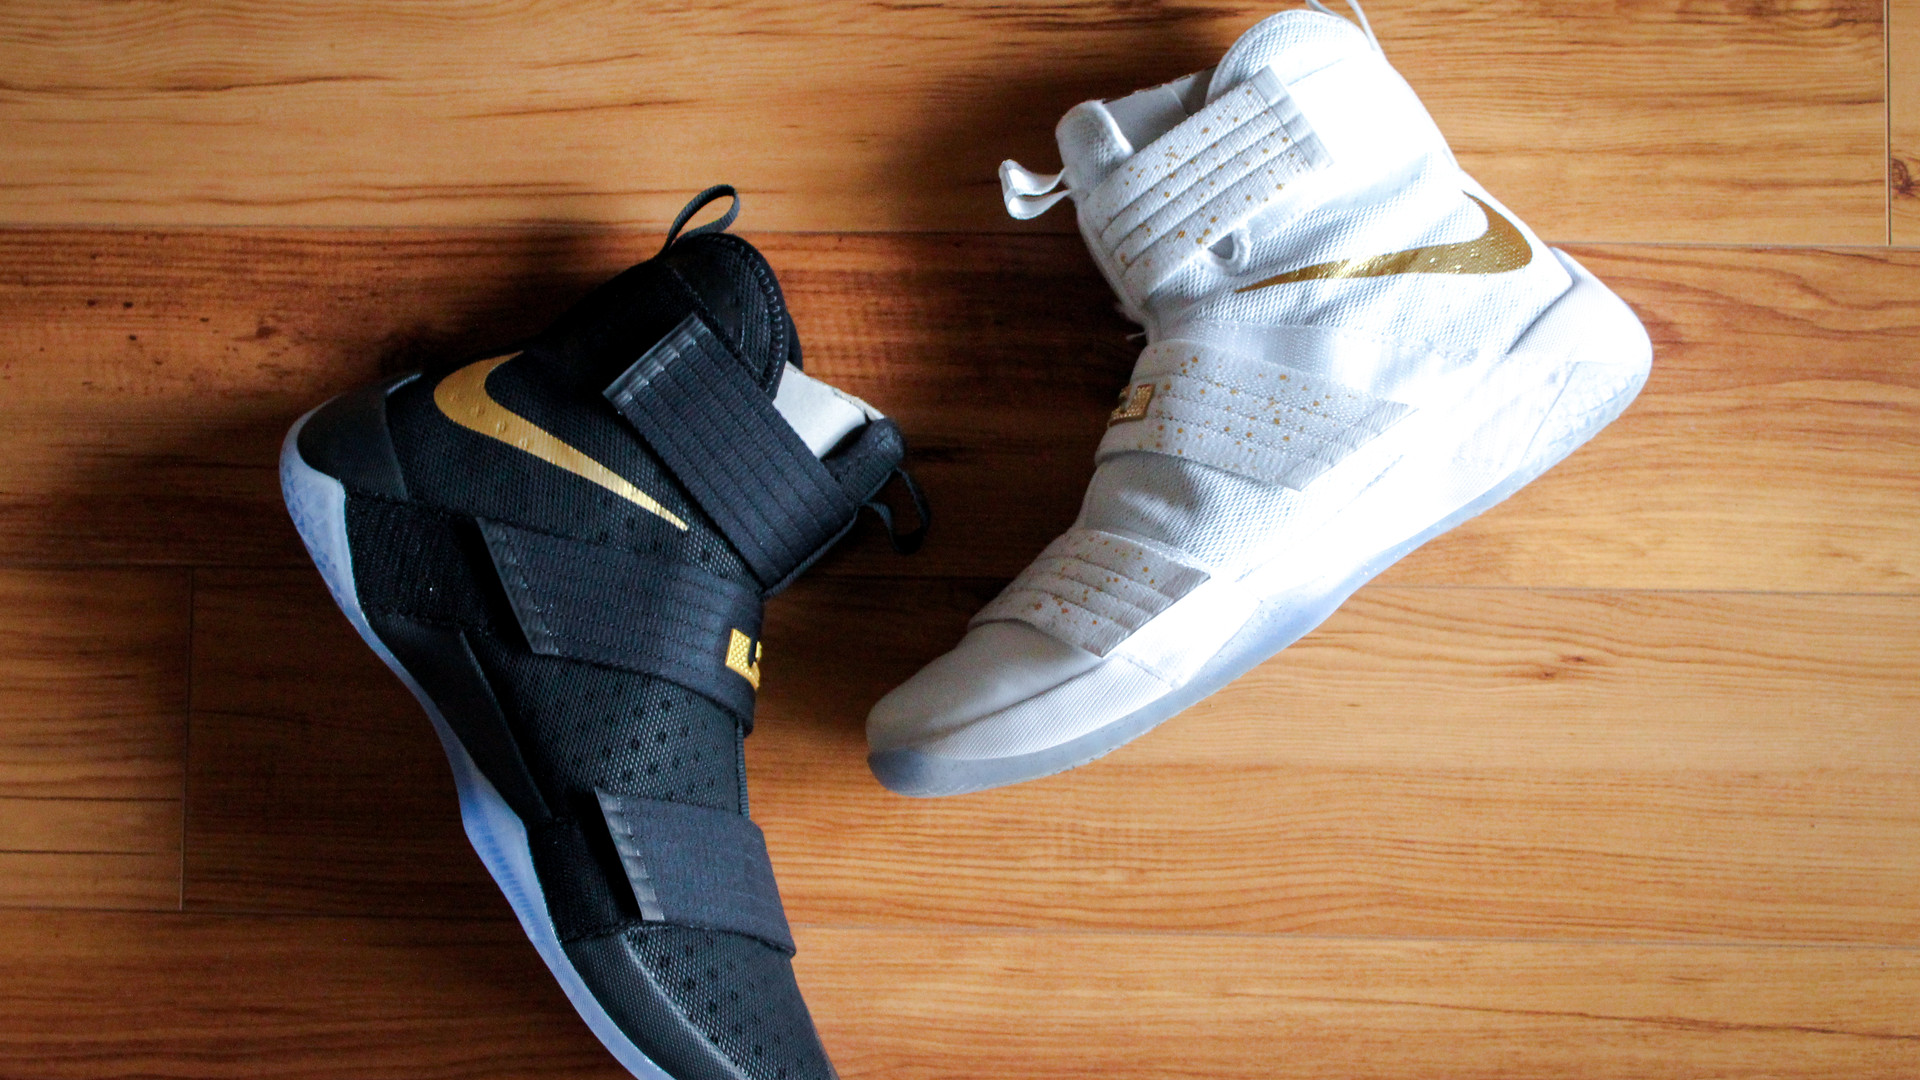 Nike Zoom Soldier 10 - Championship Pack